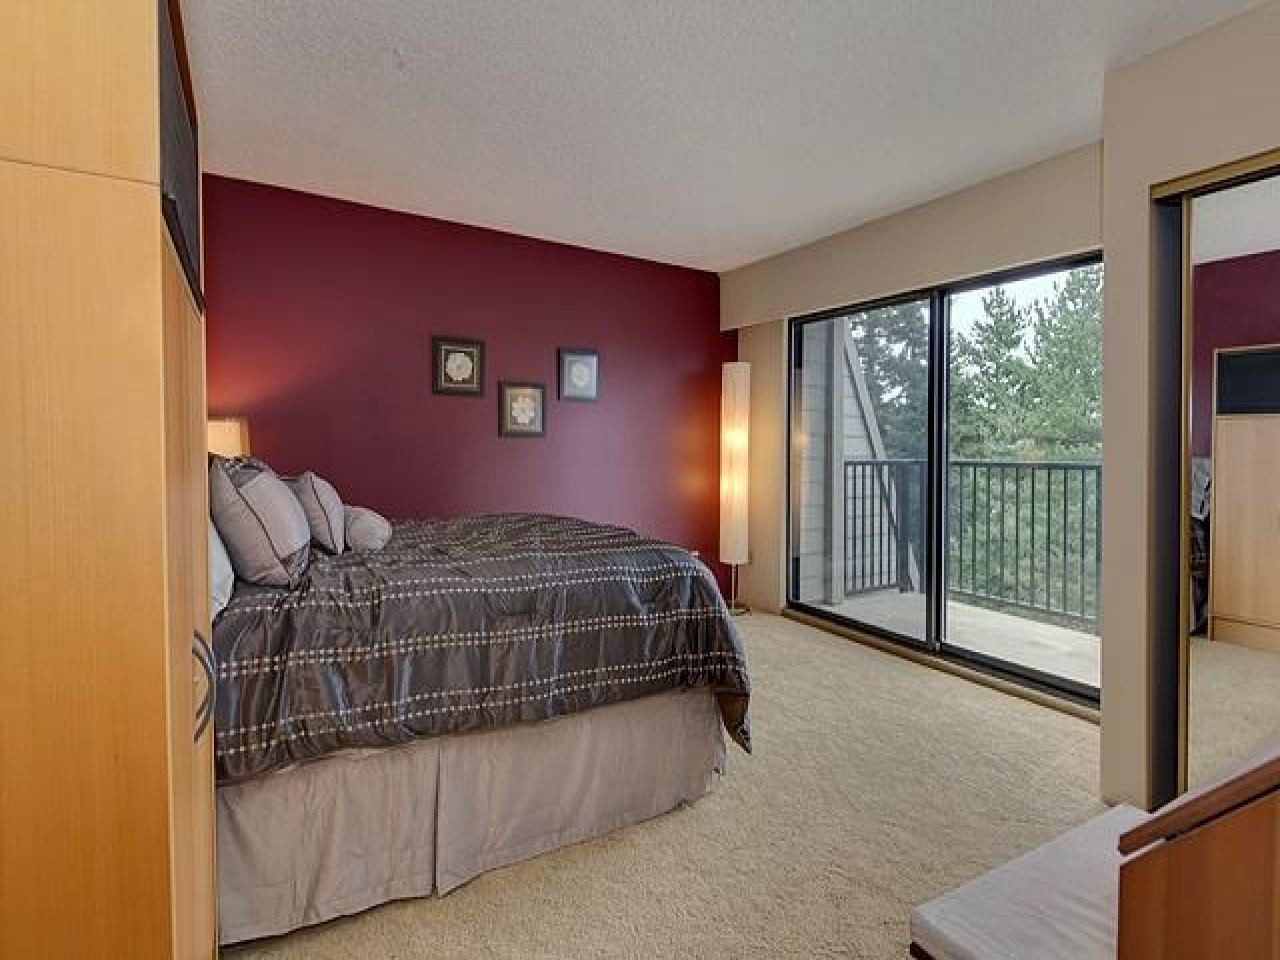 Best ideas about Accent Walls Color Combinations . Save or Pin Accent Wall Color binations Shabby Chic Bedding Now.